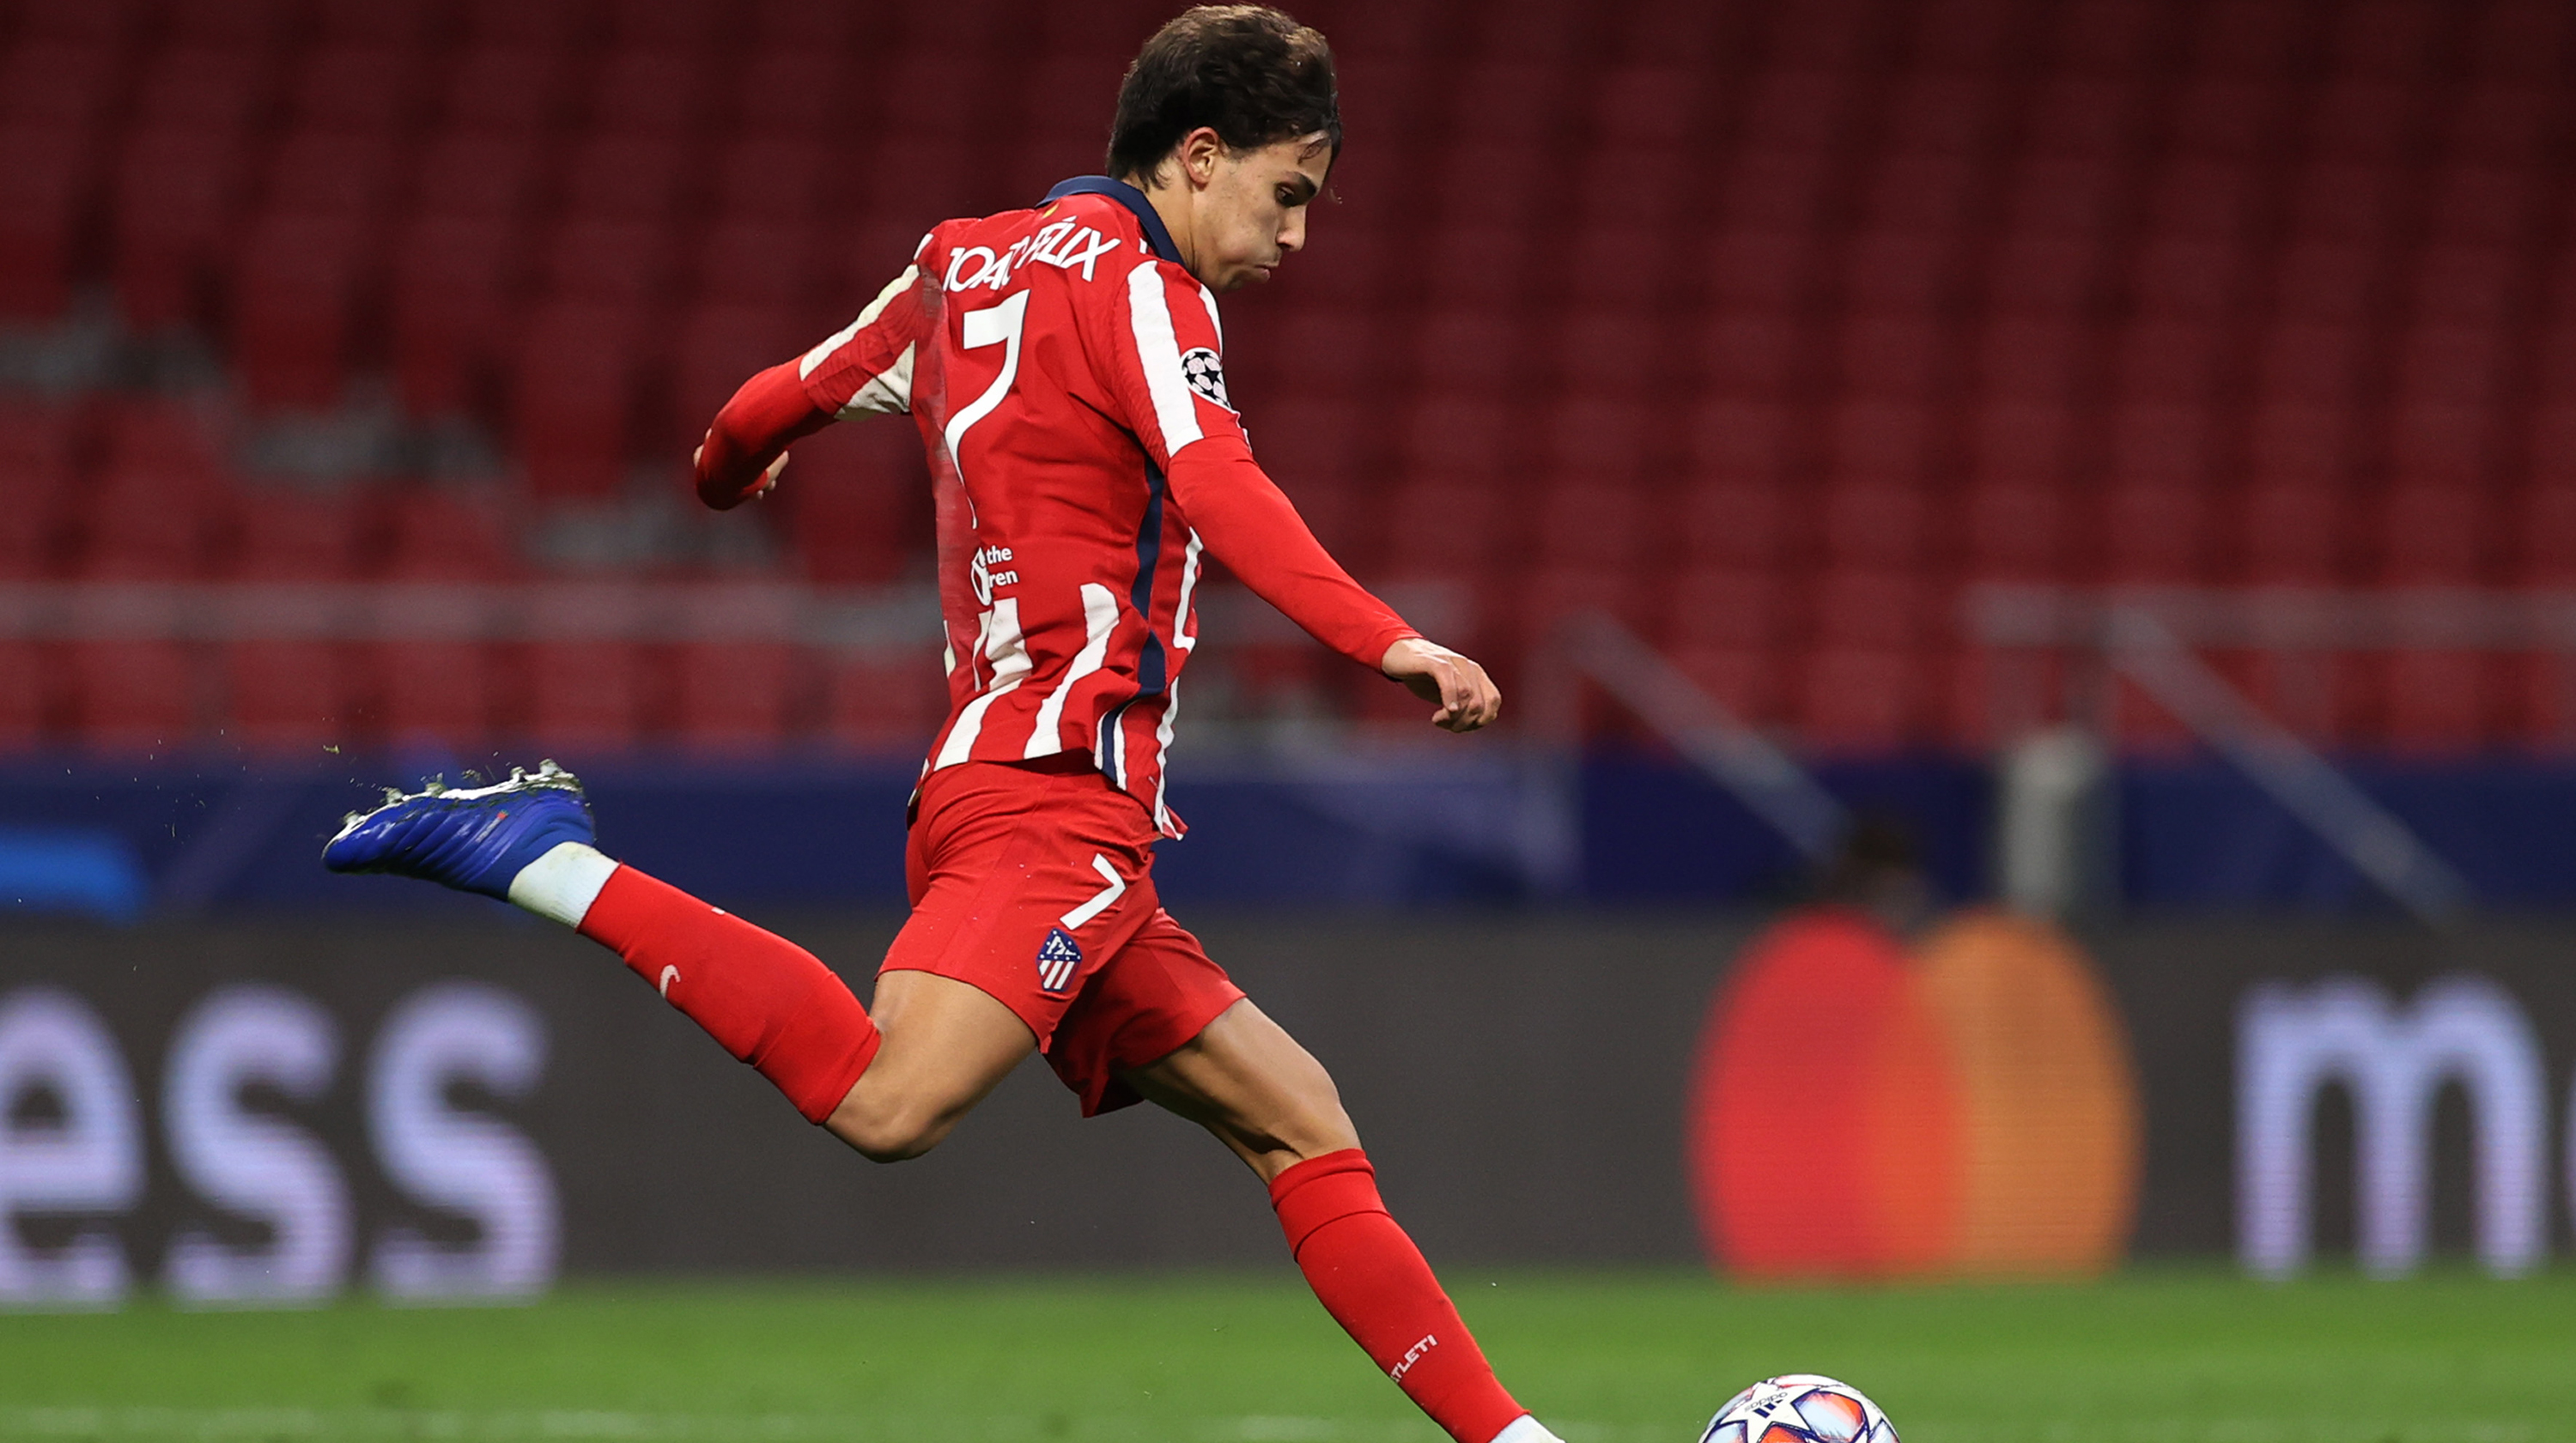 Joao Felix of Atletico de Madrid in action during the UEFA Champions League Group A stage match between Atletico de Madrid and RB Salzburg at Estadio Wanda Metropolitano on October 27, 2020